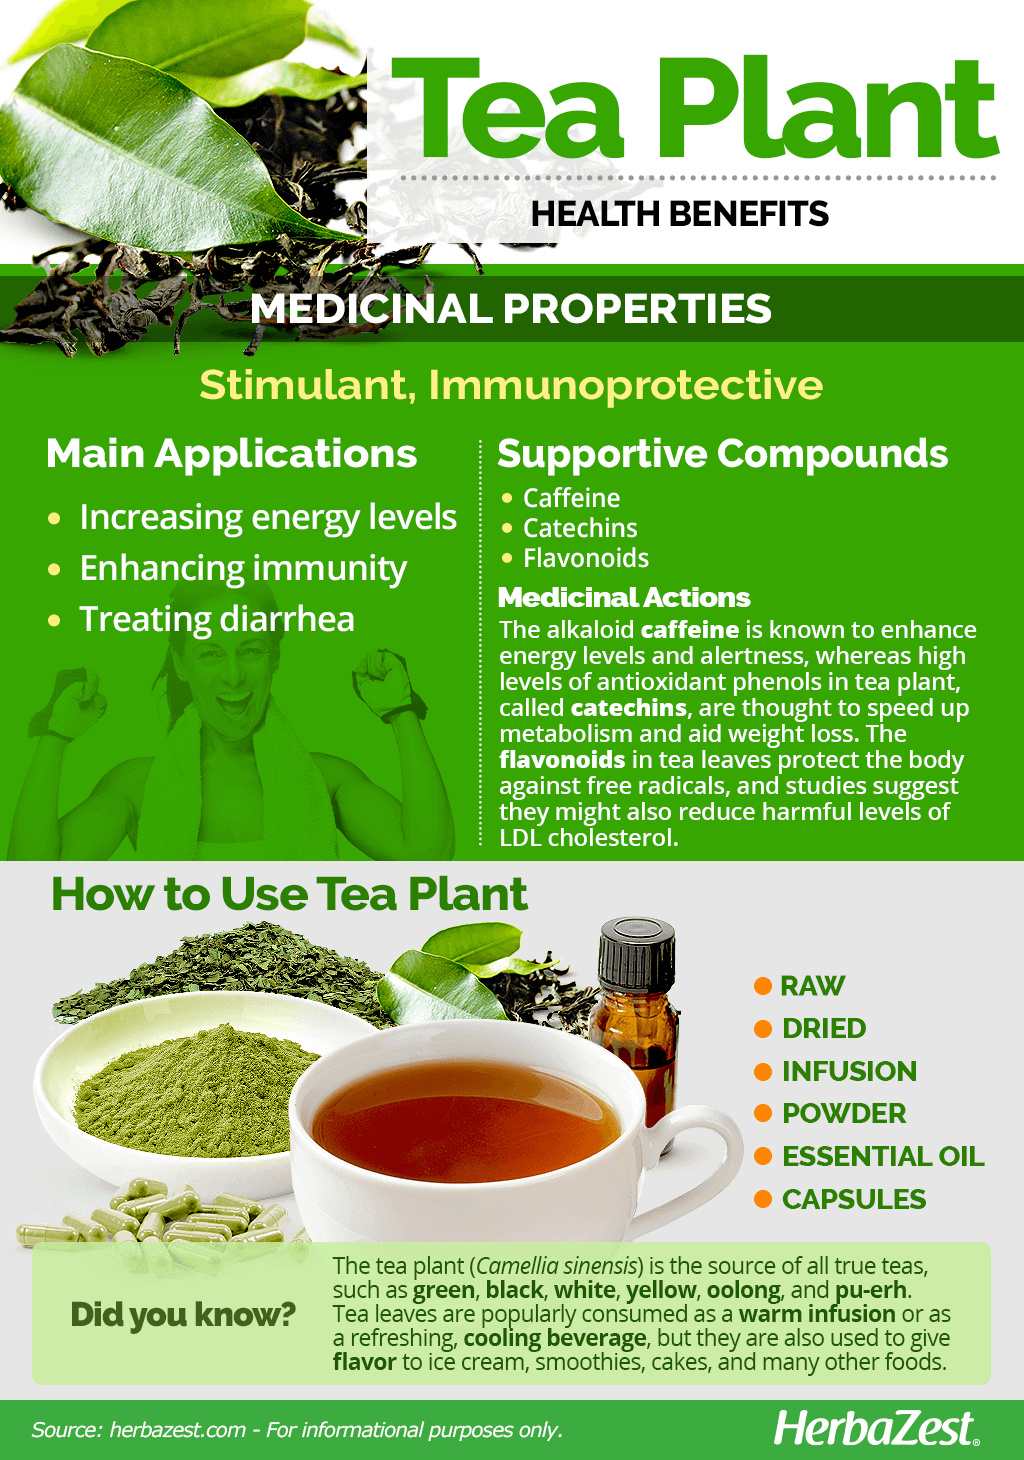 All About Tea Plant